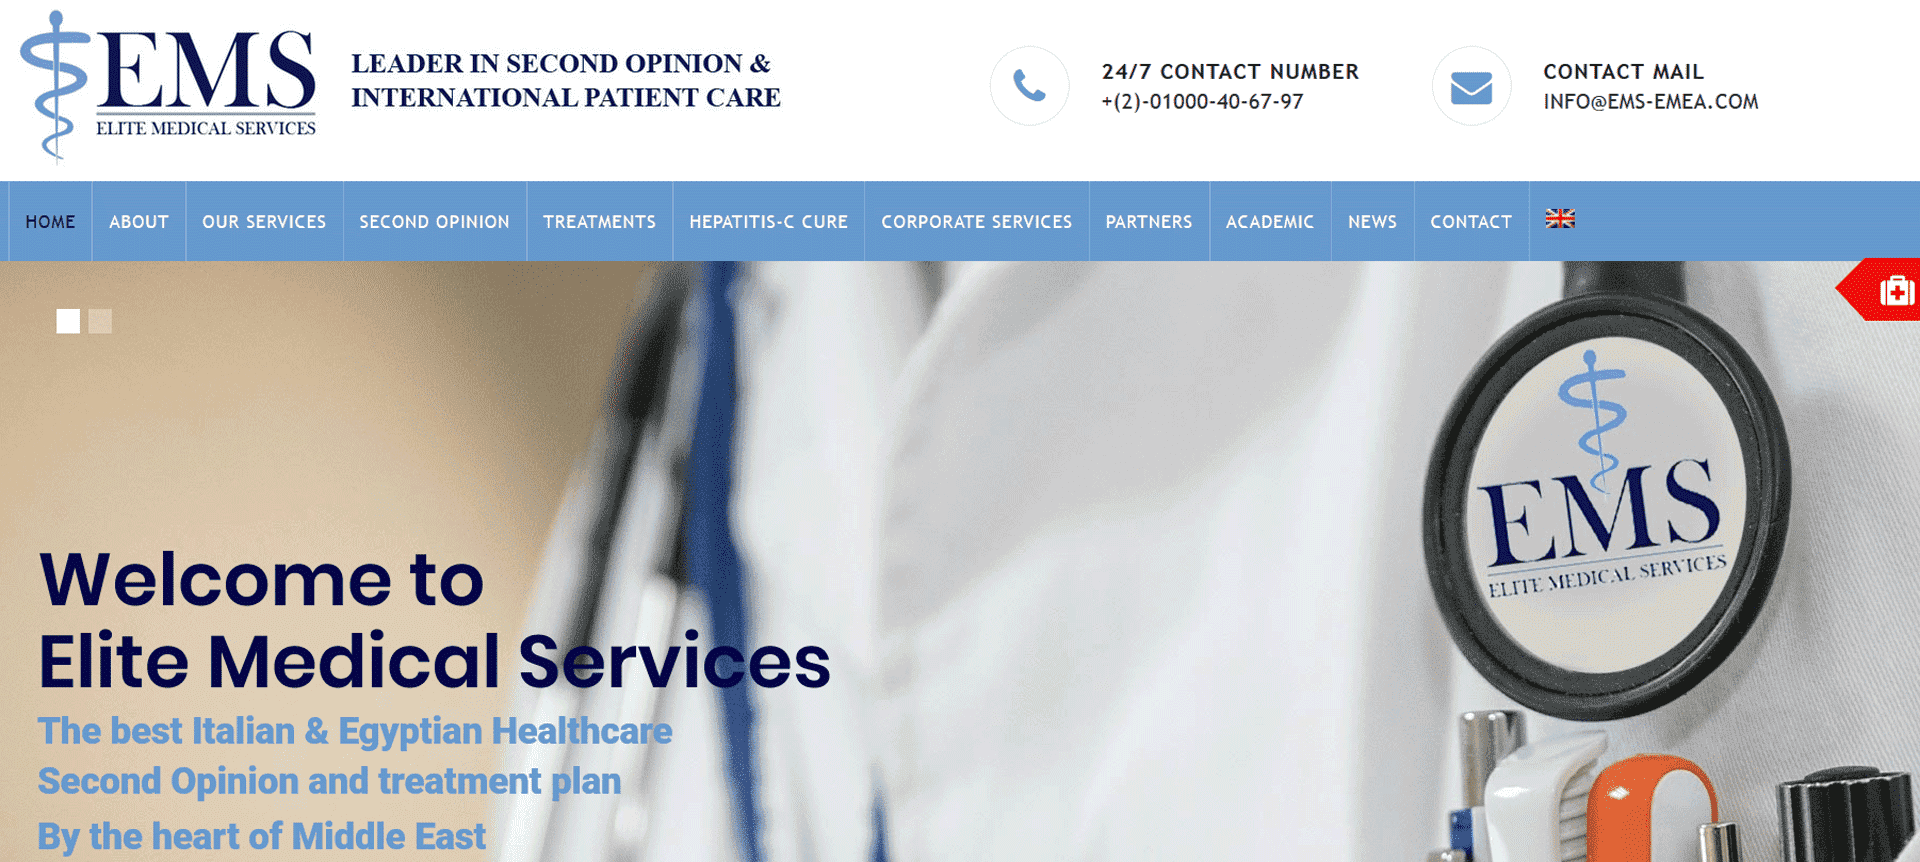 elite medical services portfolio clienti digital compass